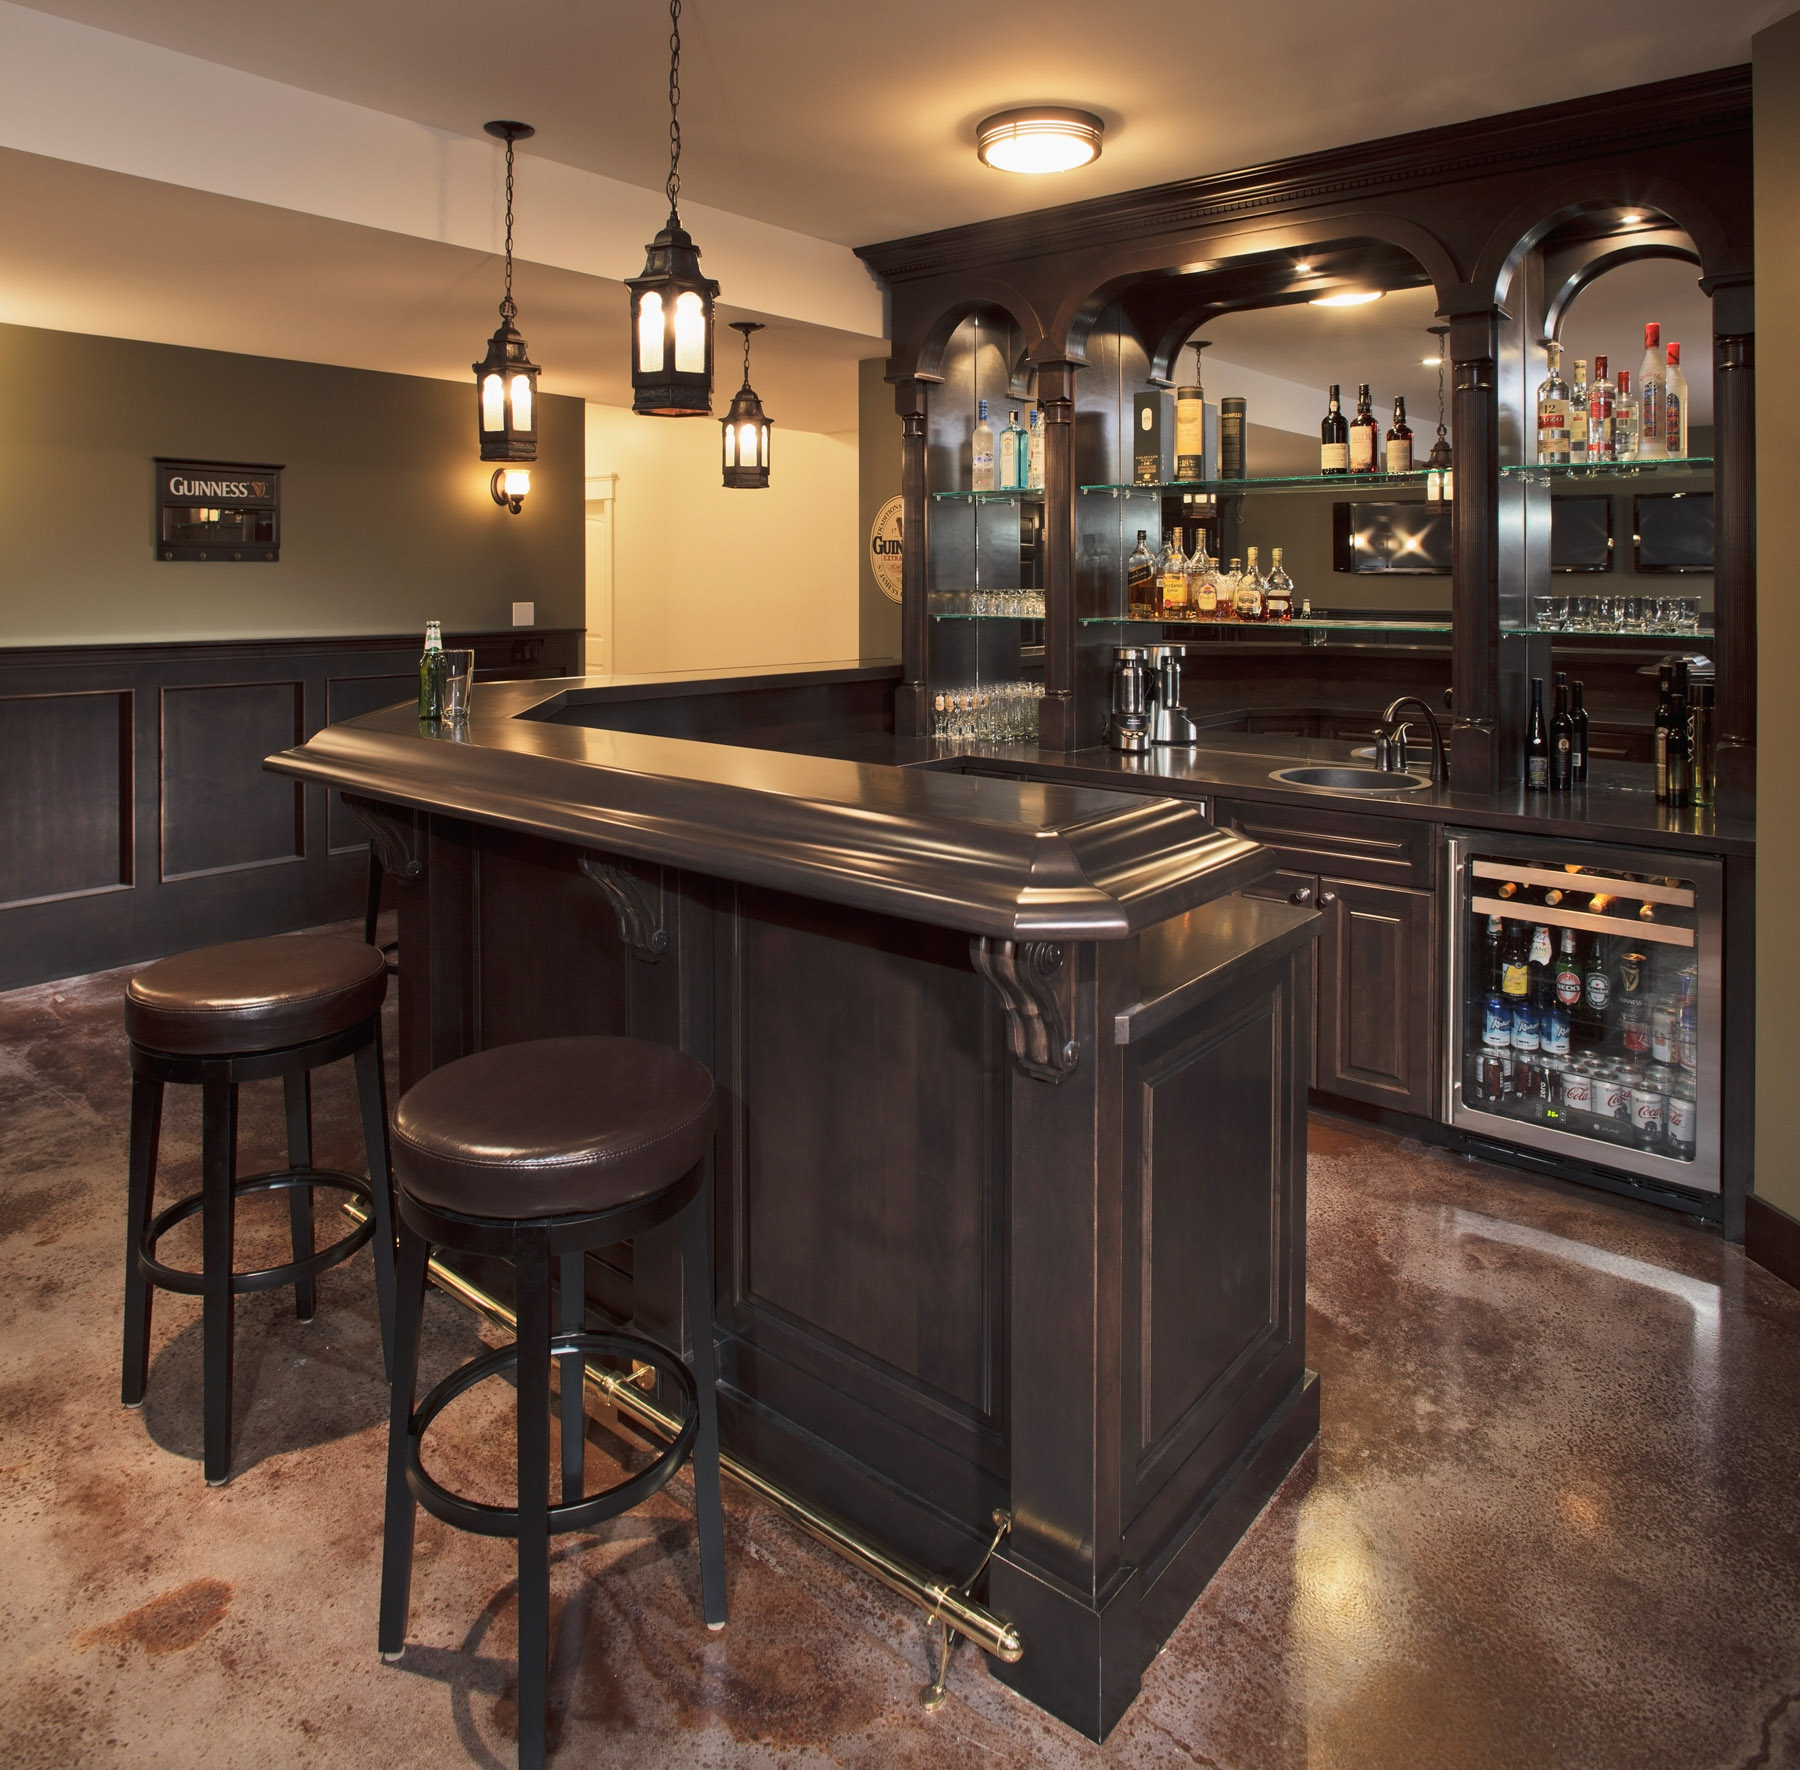 Man Cave Furniture Calgary : Bars stephens fine homes